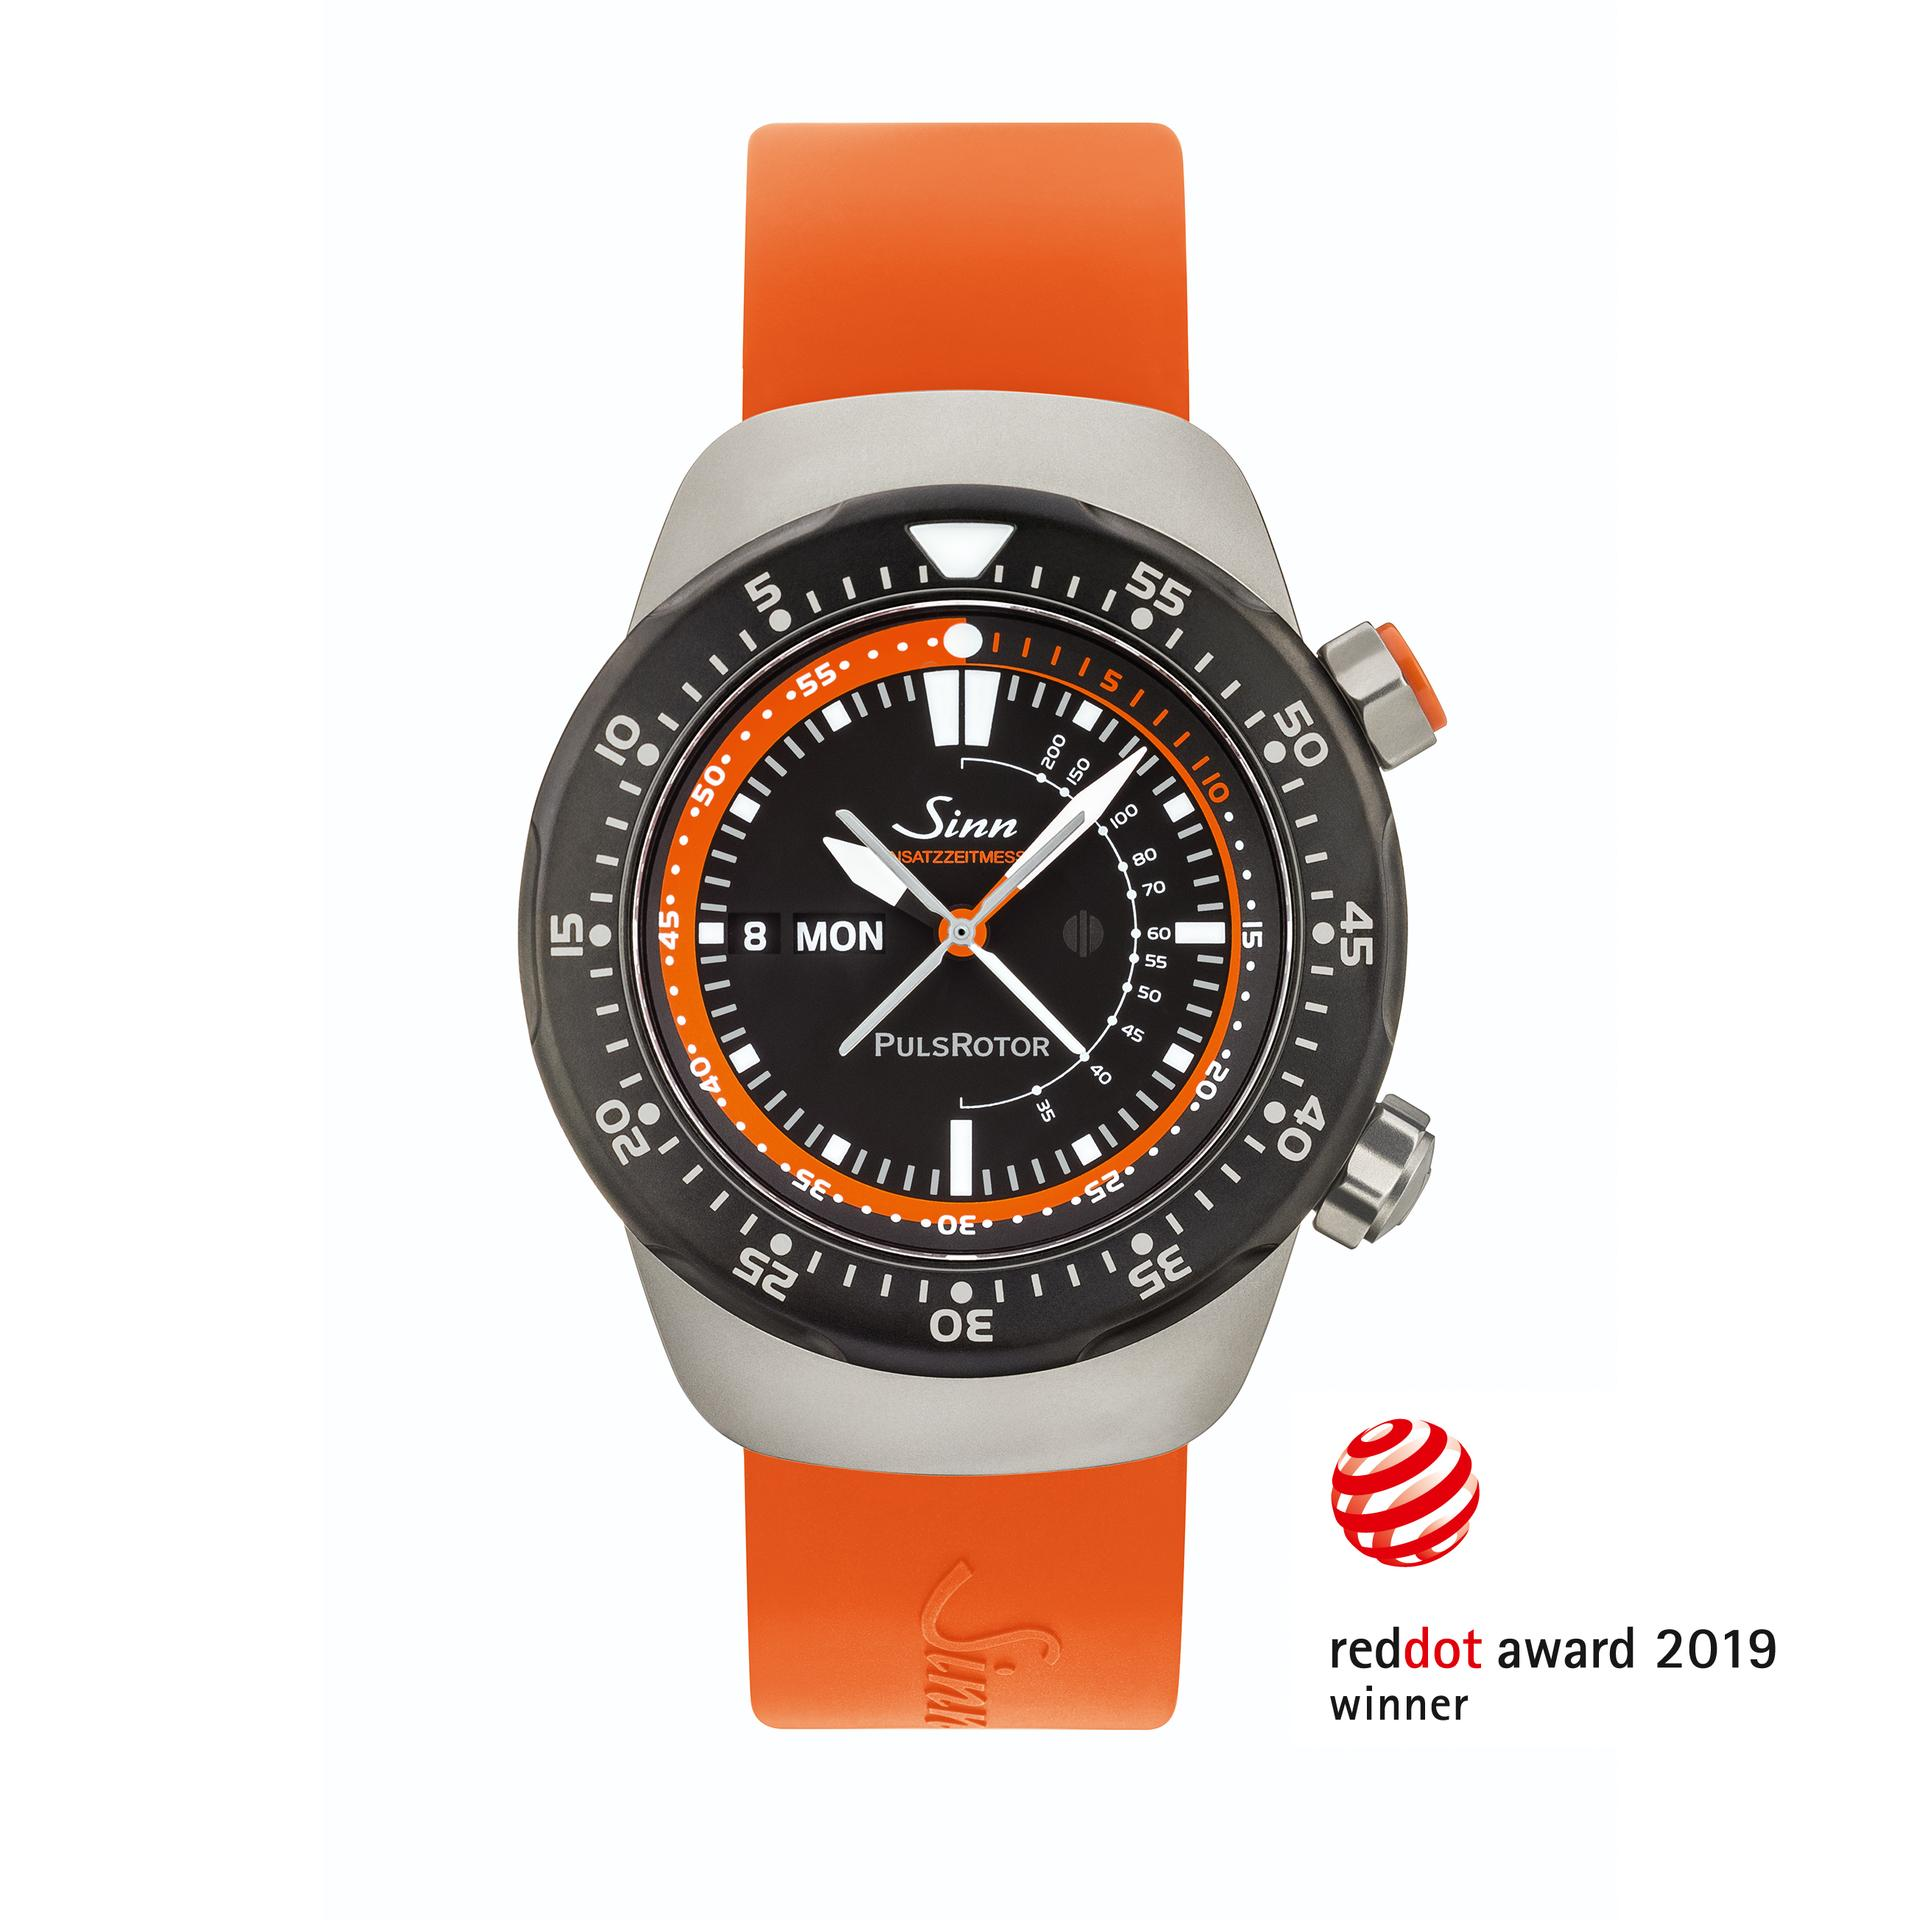 The mission timer Sinn EZM 12 received the Red Dot (picture courtesy of Sinn Spezialuhren GmbH)